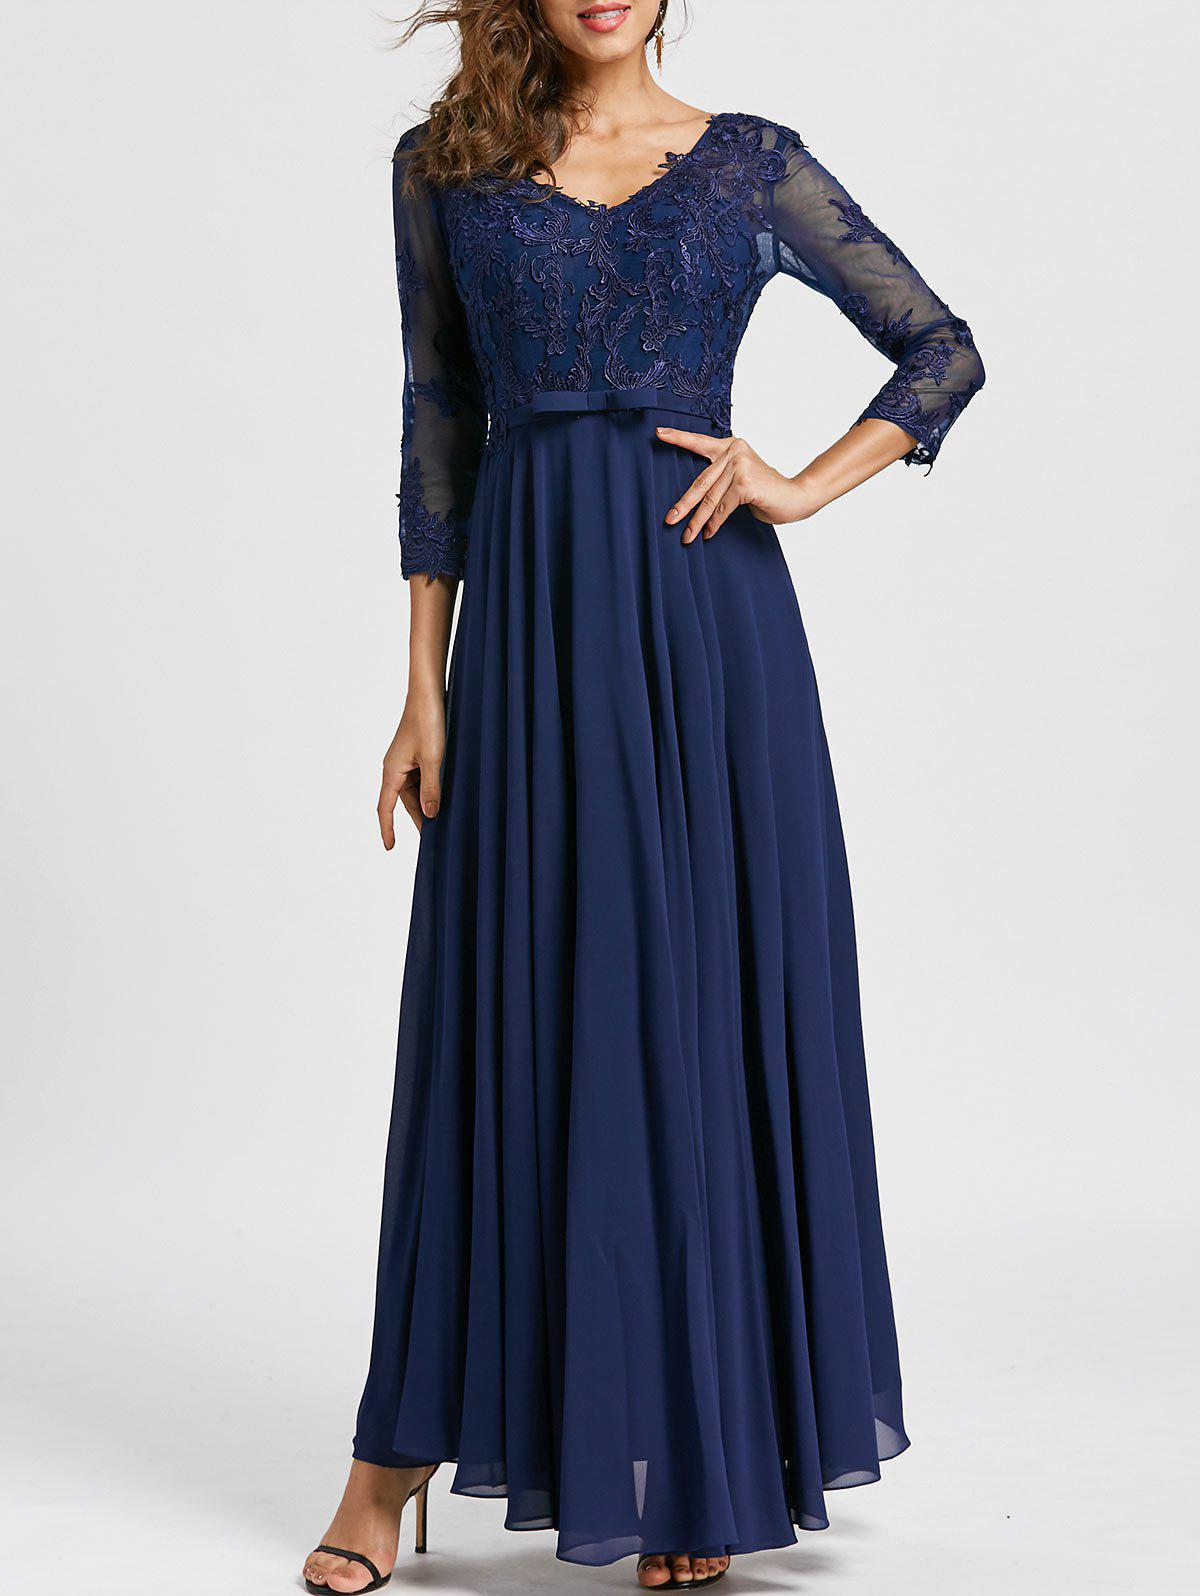 Bowknot V Neck Maxi Evening Dress - PURPLISH BLUE 2XL